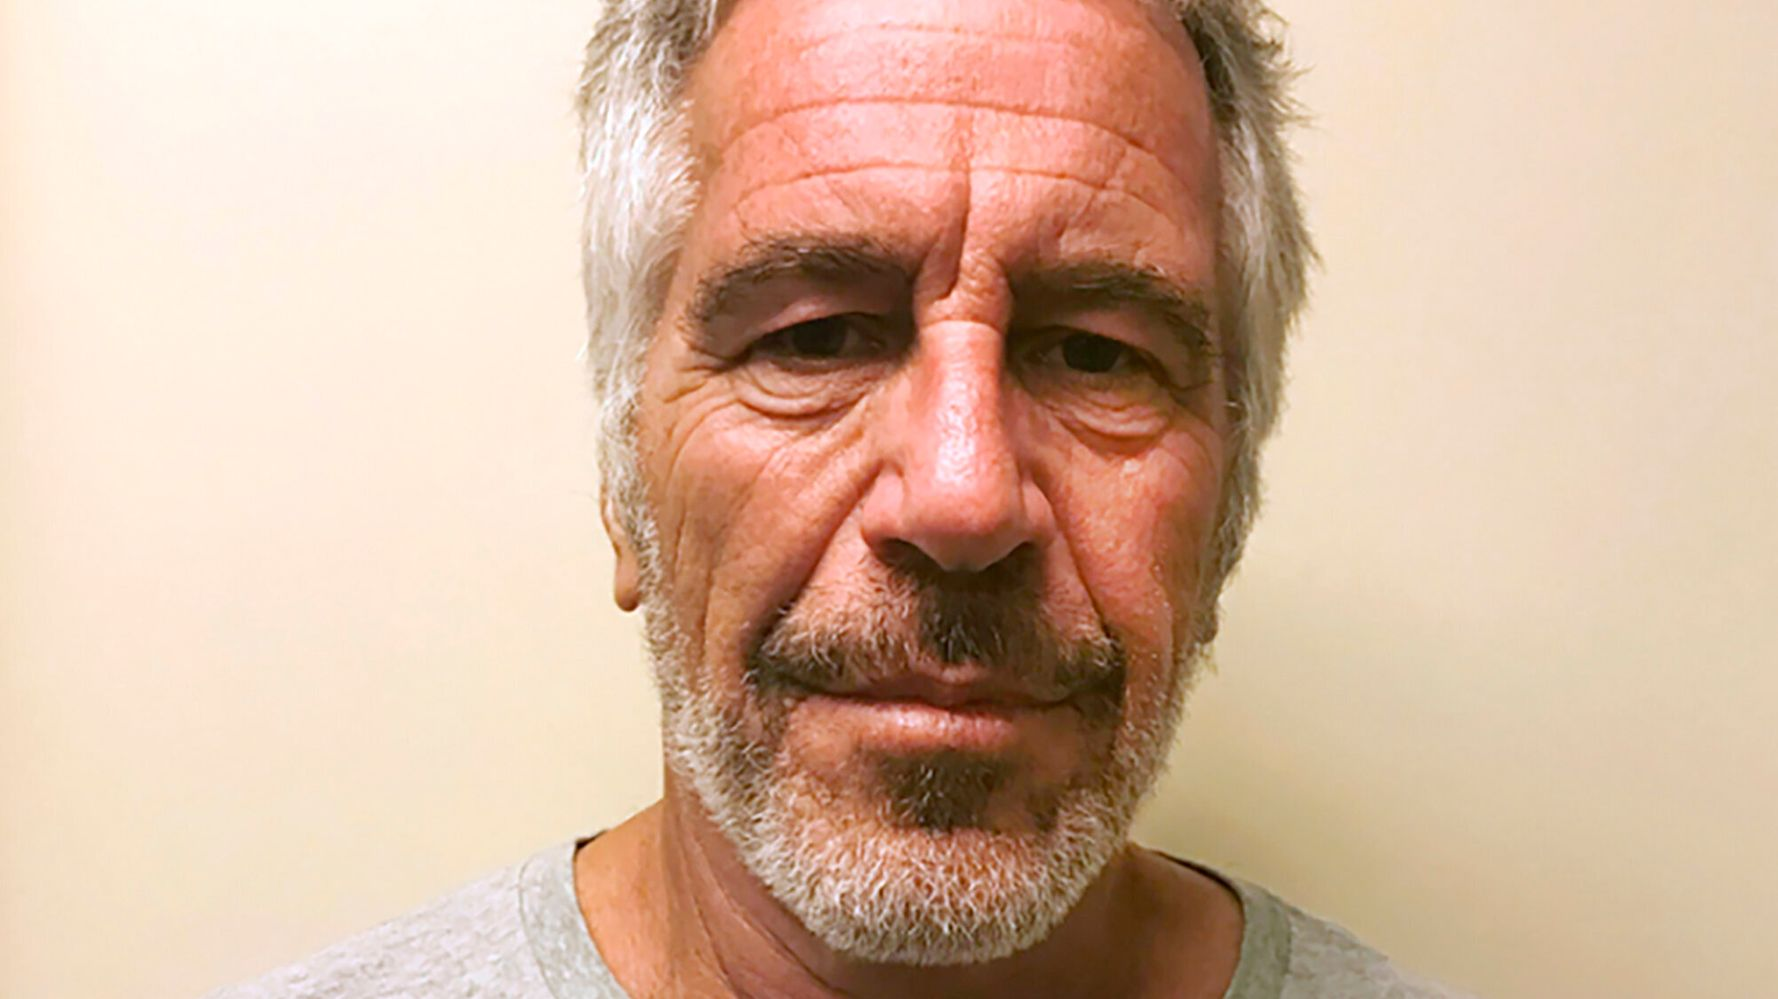 Westlake Legal Group 5d503583240000ff34937eba Report: Jail Broke Rules Ahead Of Epstein's Death